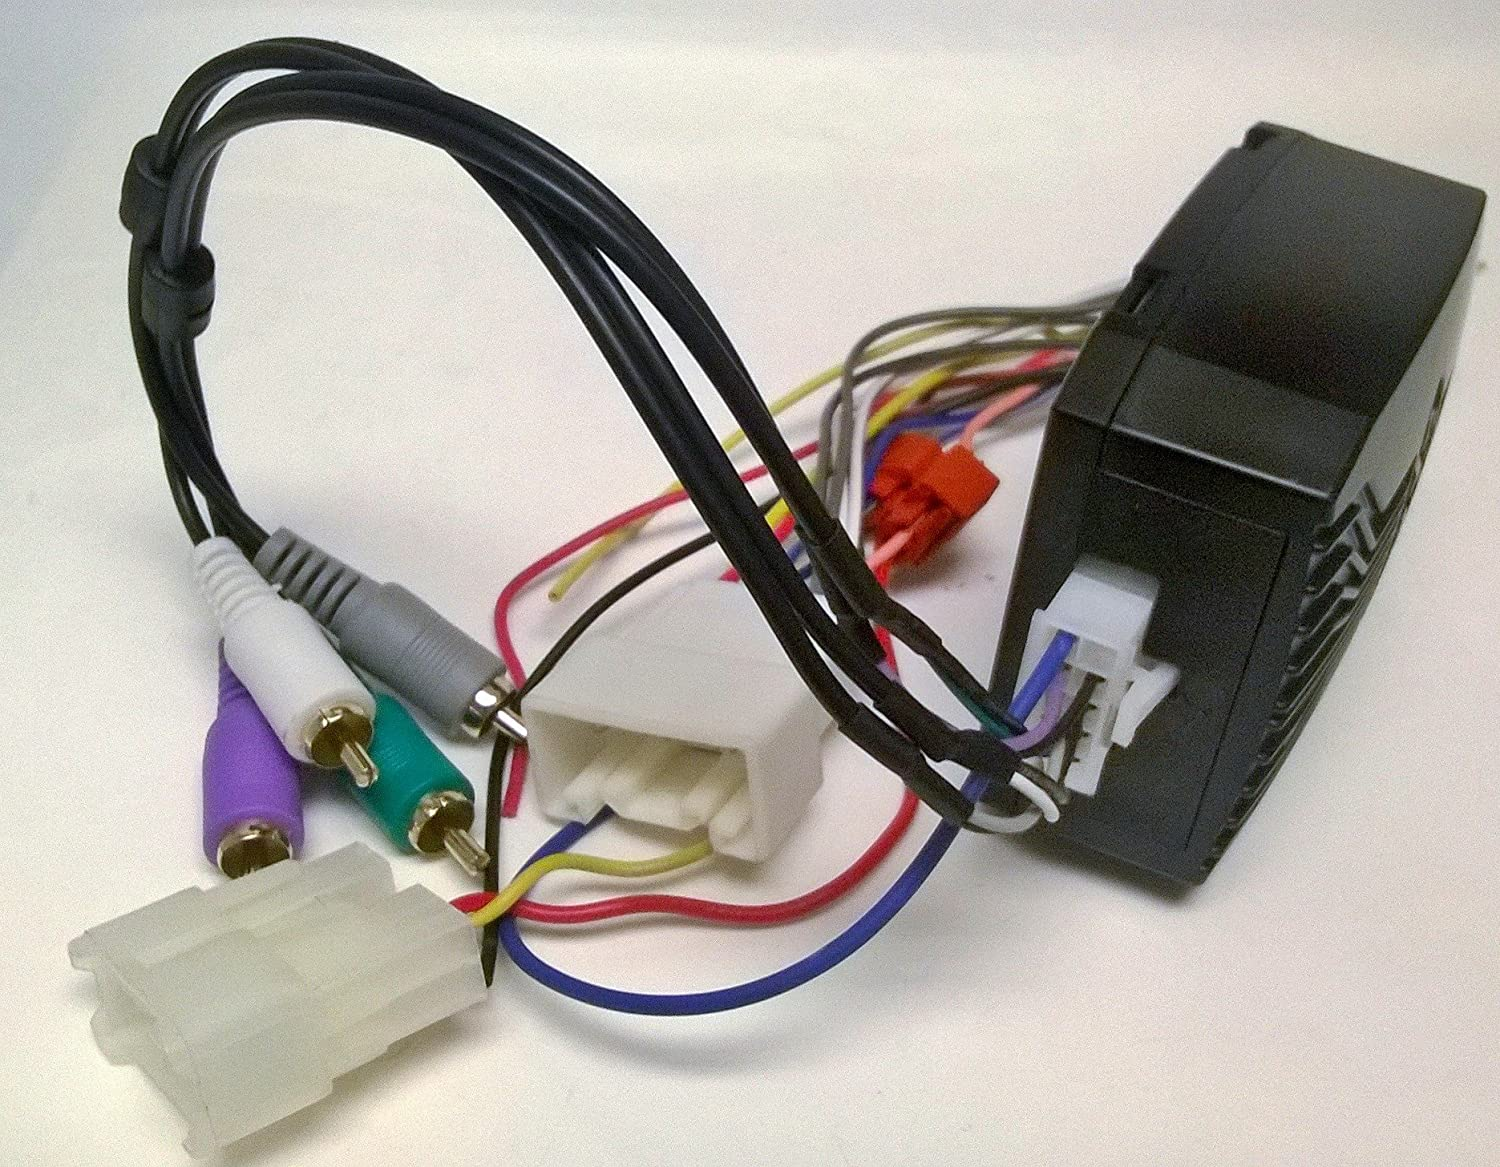 [SCHEMATICS_43NM]  Amazon.com: Stereo Wire Harness for Installing a New Radio into a Lexus 01  2001 IS300: Car Electronics | Lexus Wiring |  | Amazon.com